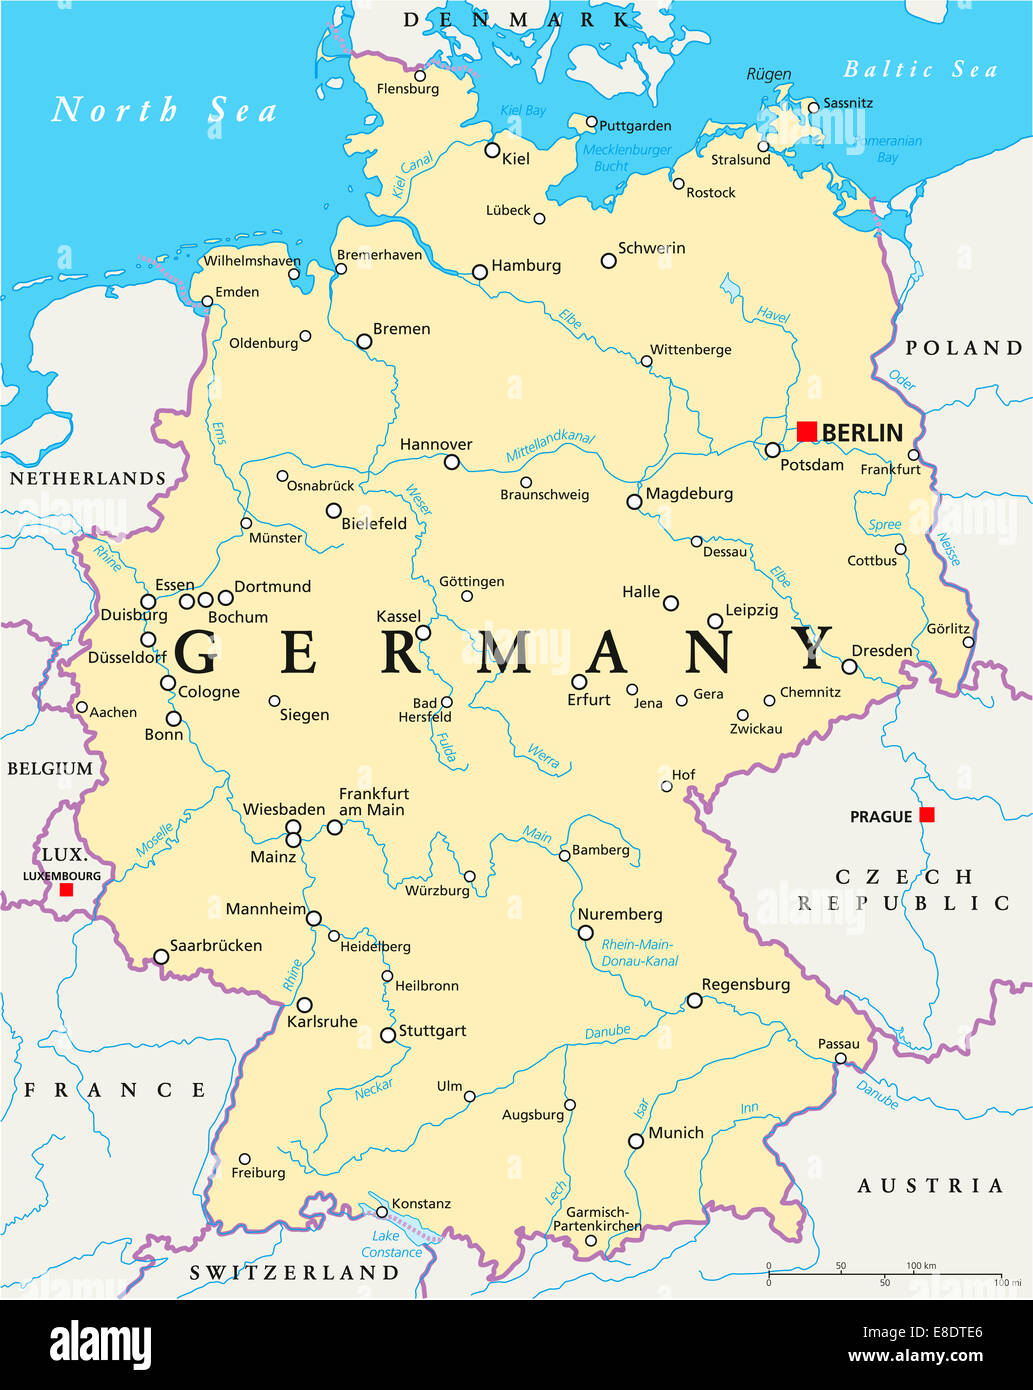 Berlin Germany Map Germany Political Map with capital Berlin, national borders, most